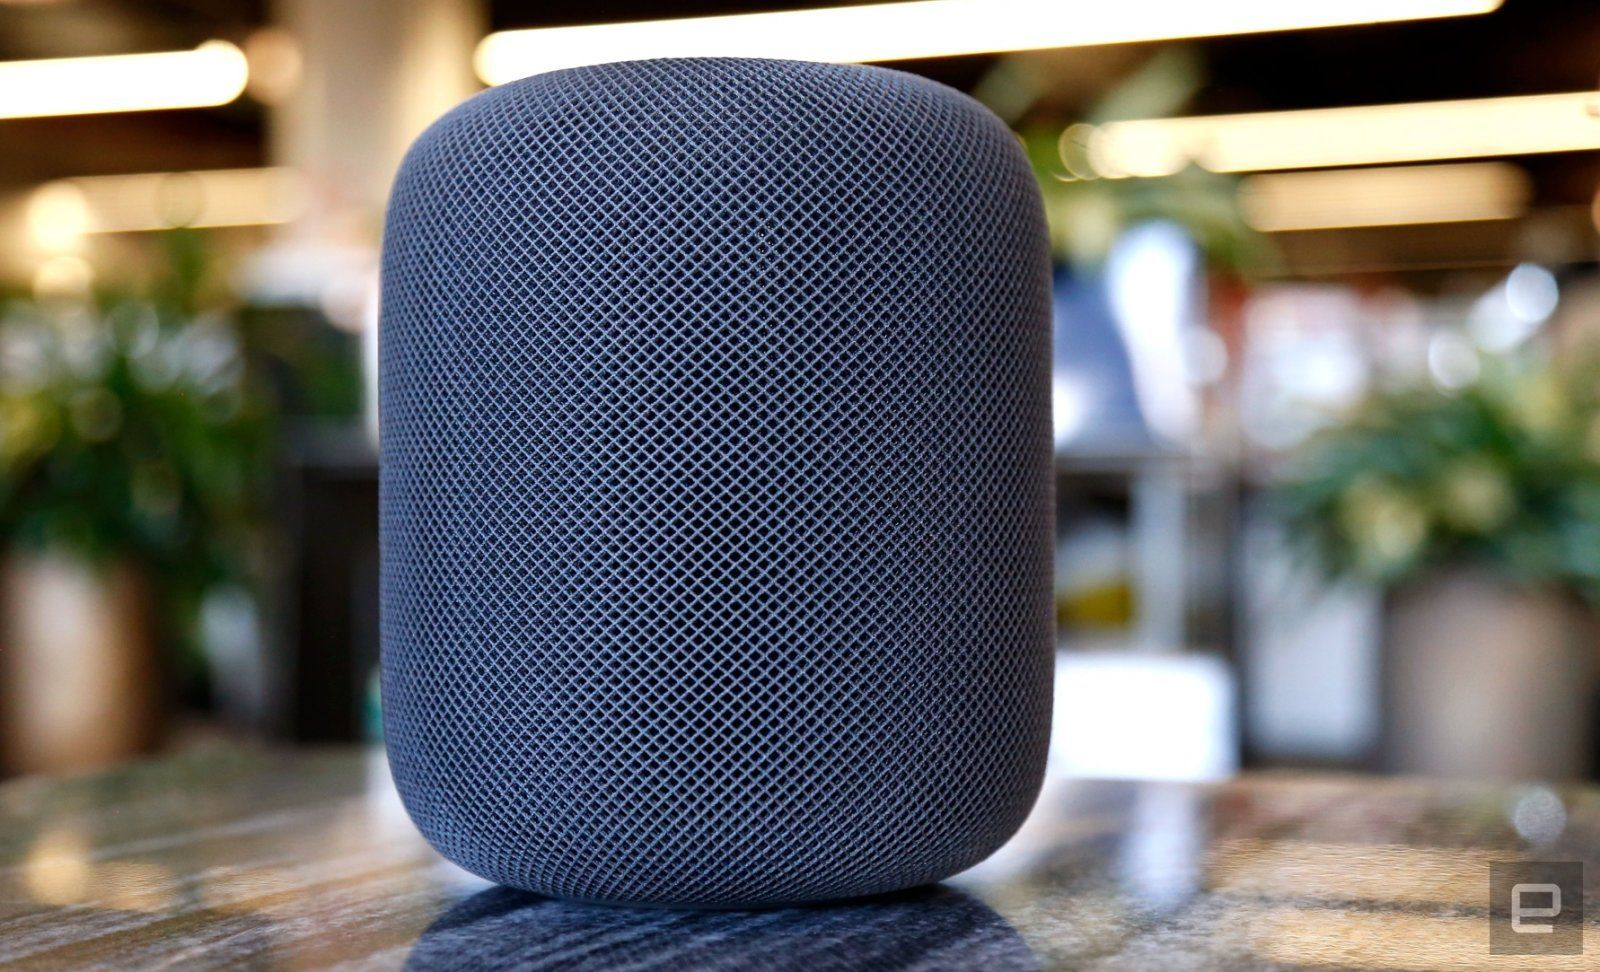 The Best Deals We Found This Week The Homepod Pixel 4 And More In 2020 Cool Things To Buy Black Friday Sale Apple